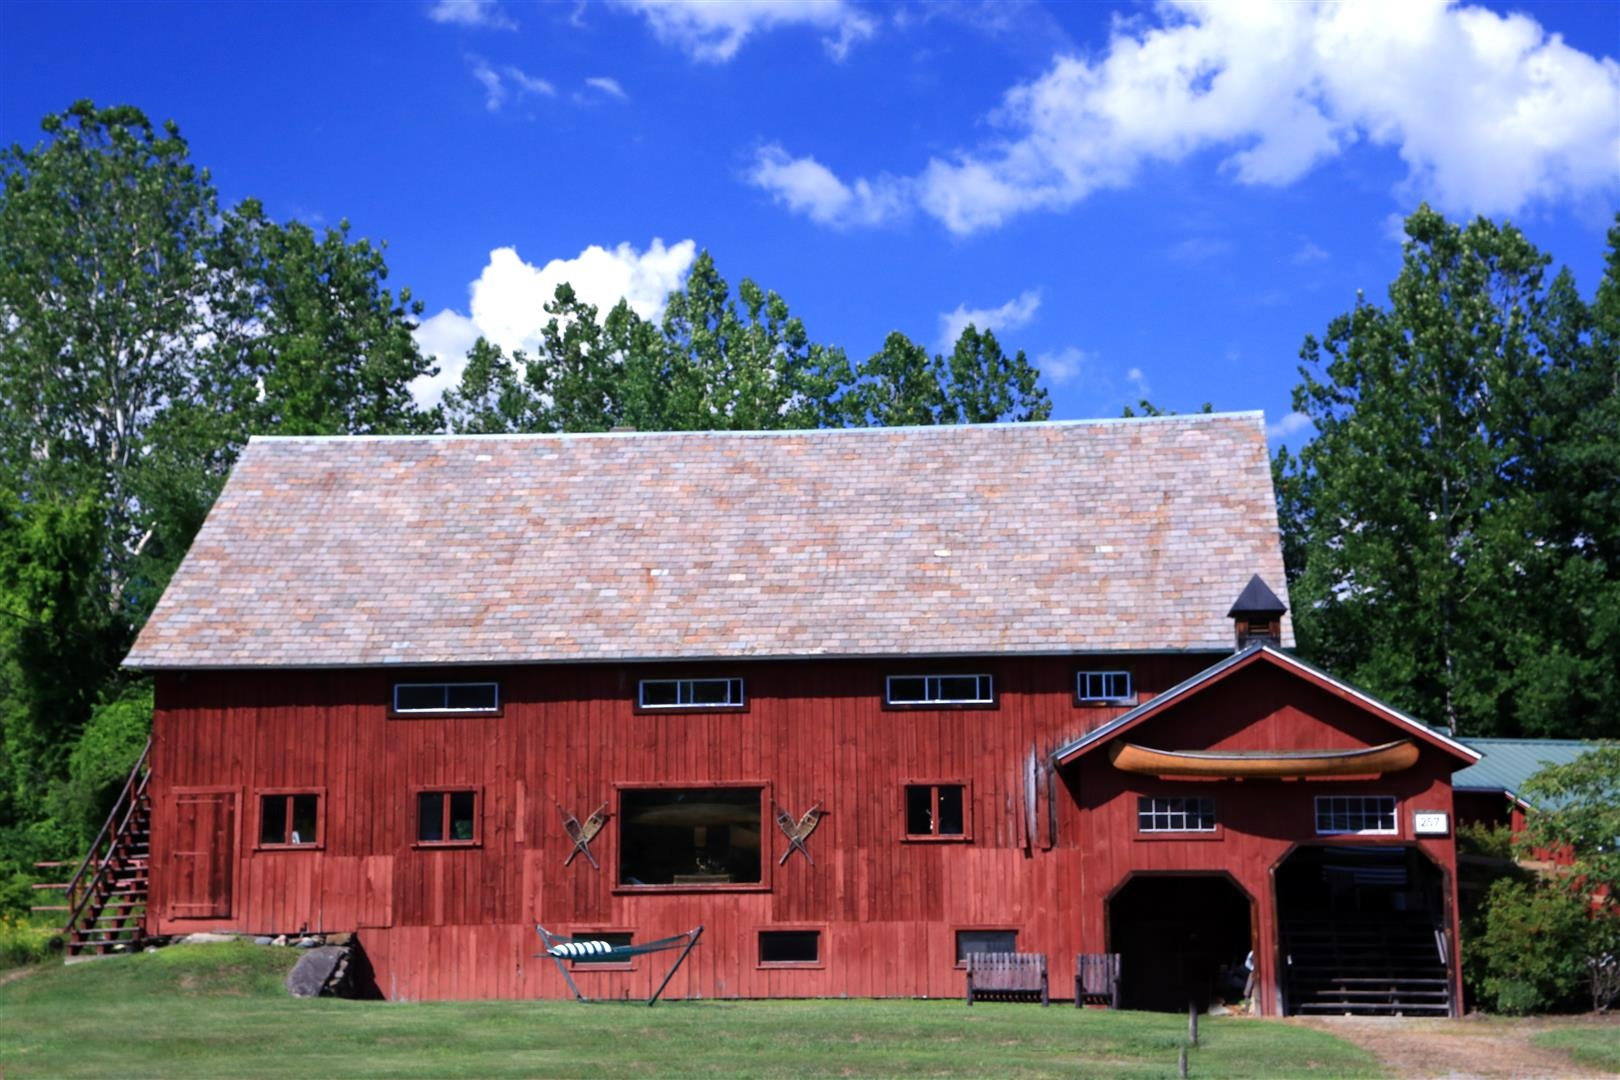 Vermont Barn by portillo45